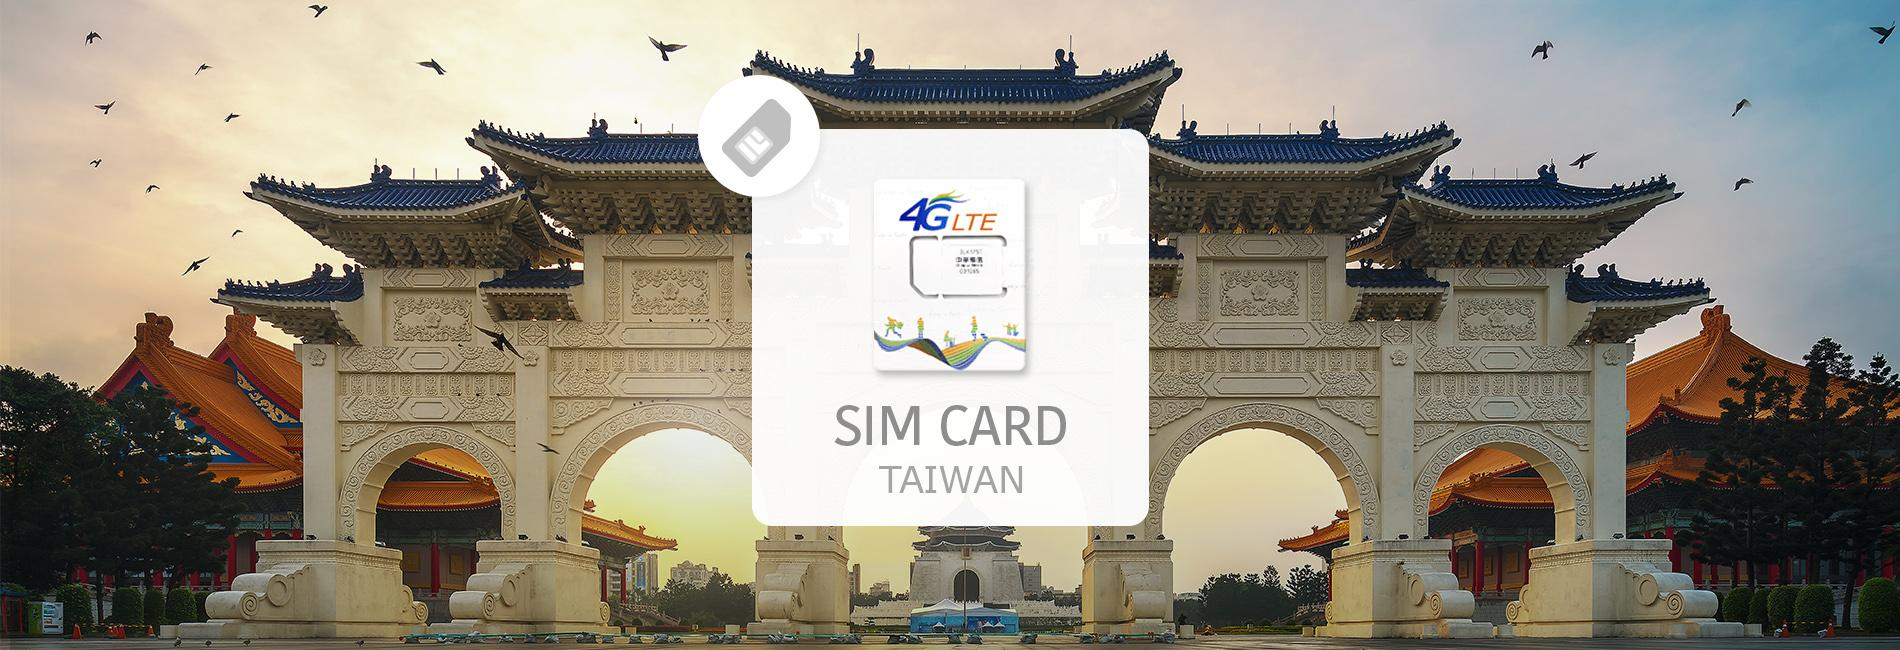 Taiwan Unlimited 4G SIM Card (Pick-Up in Taiwan Airport)